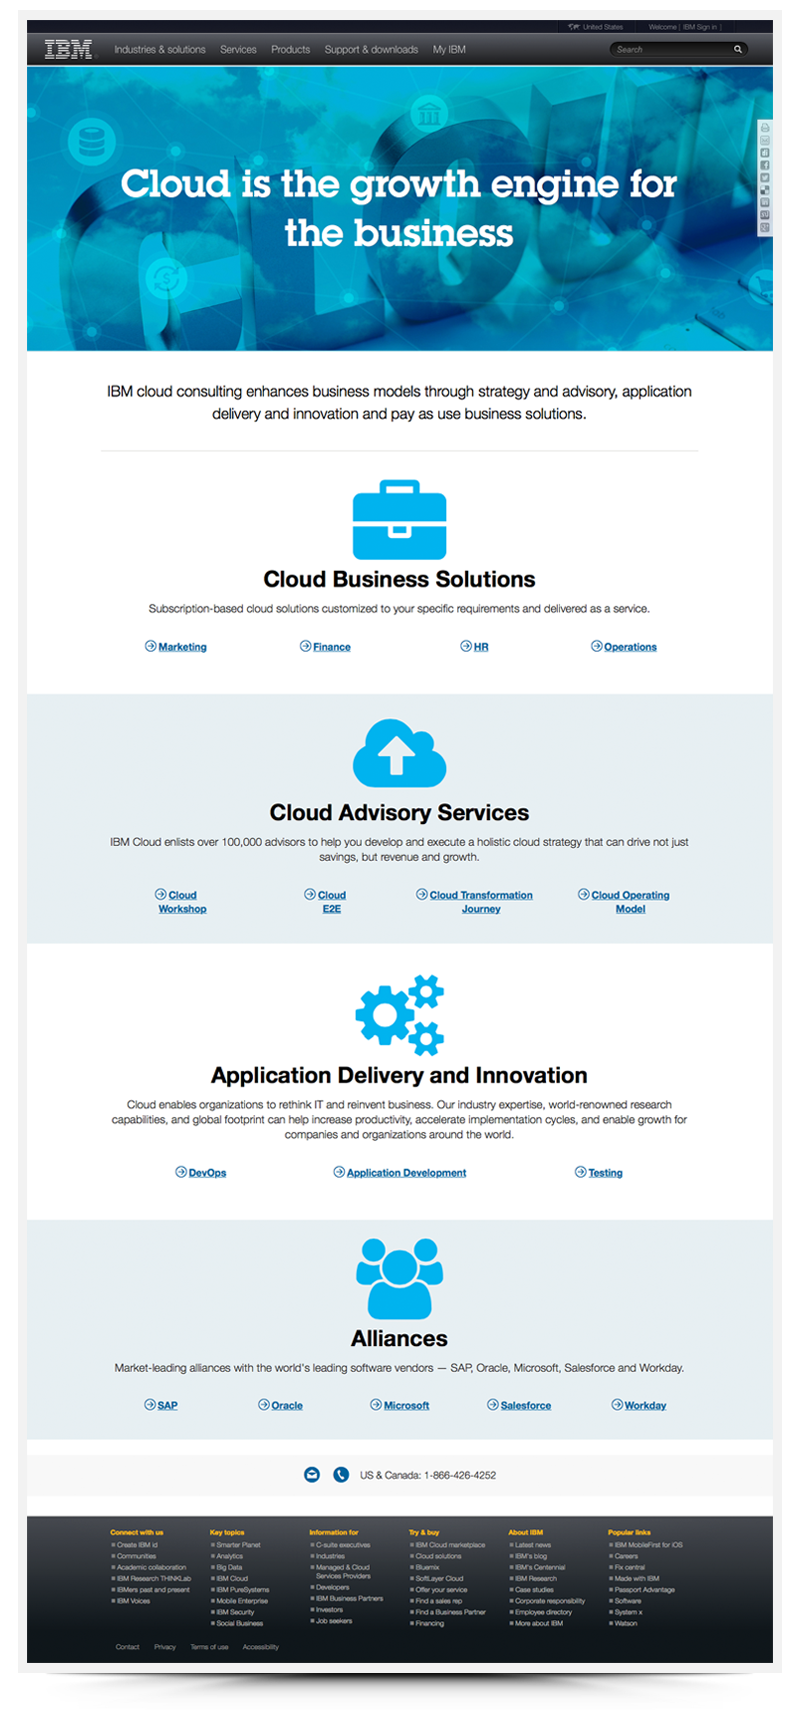 IBM GBS Cloud